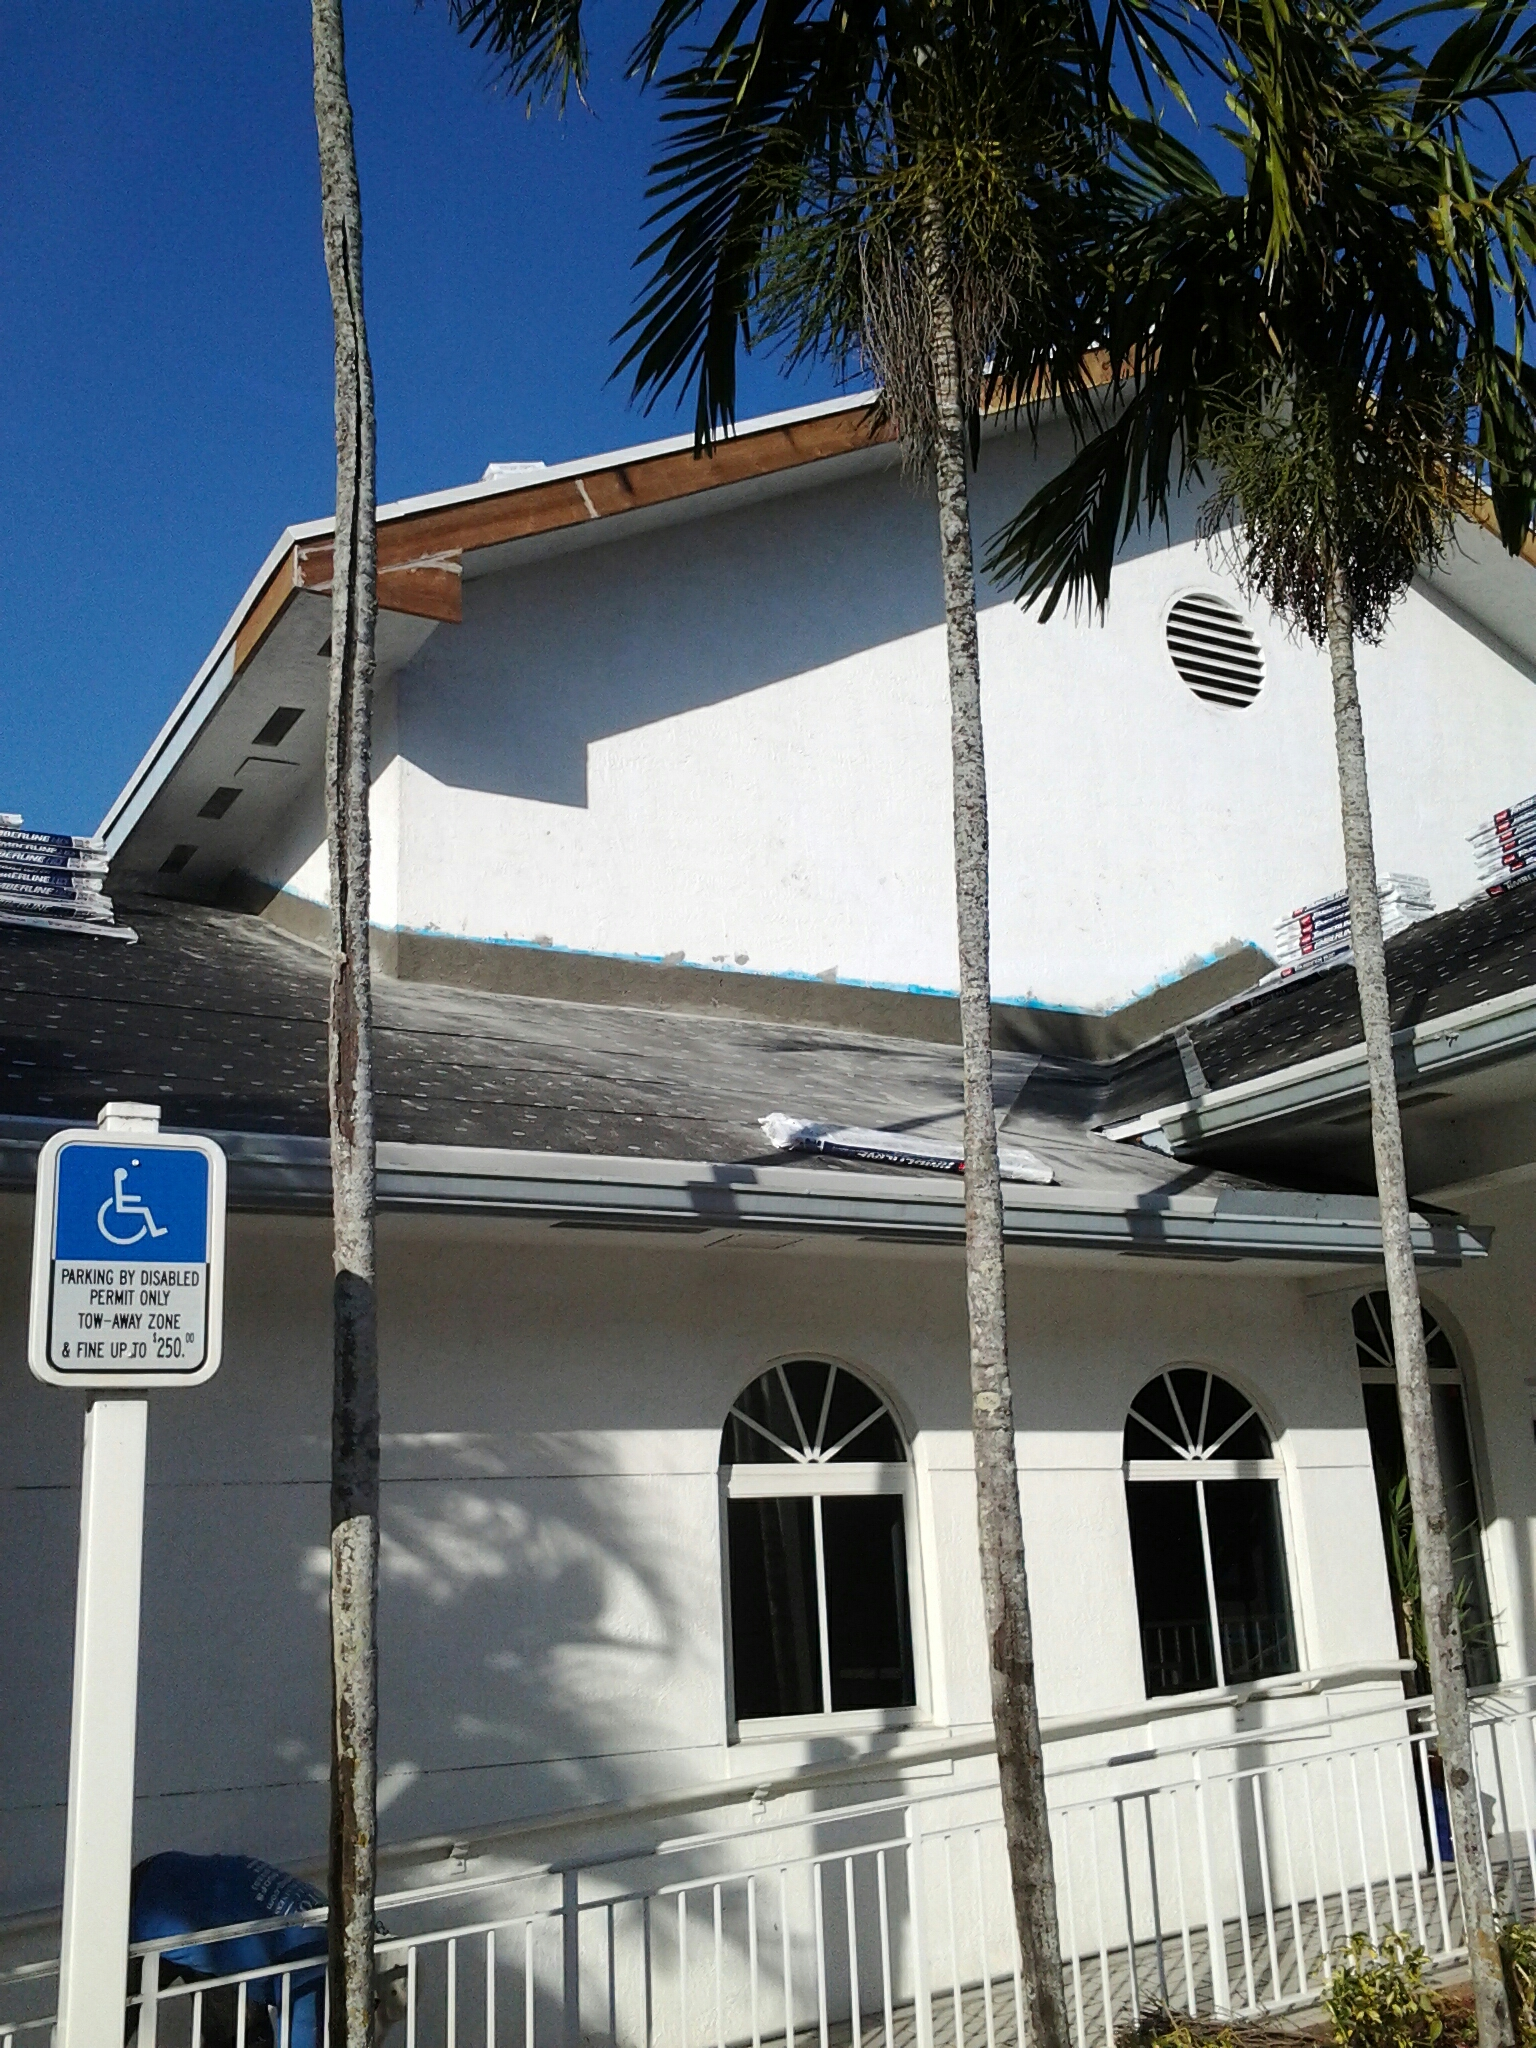 Southwest Ranches, FL - Finished stucco work on roof